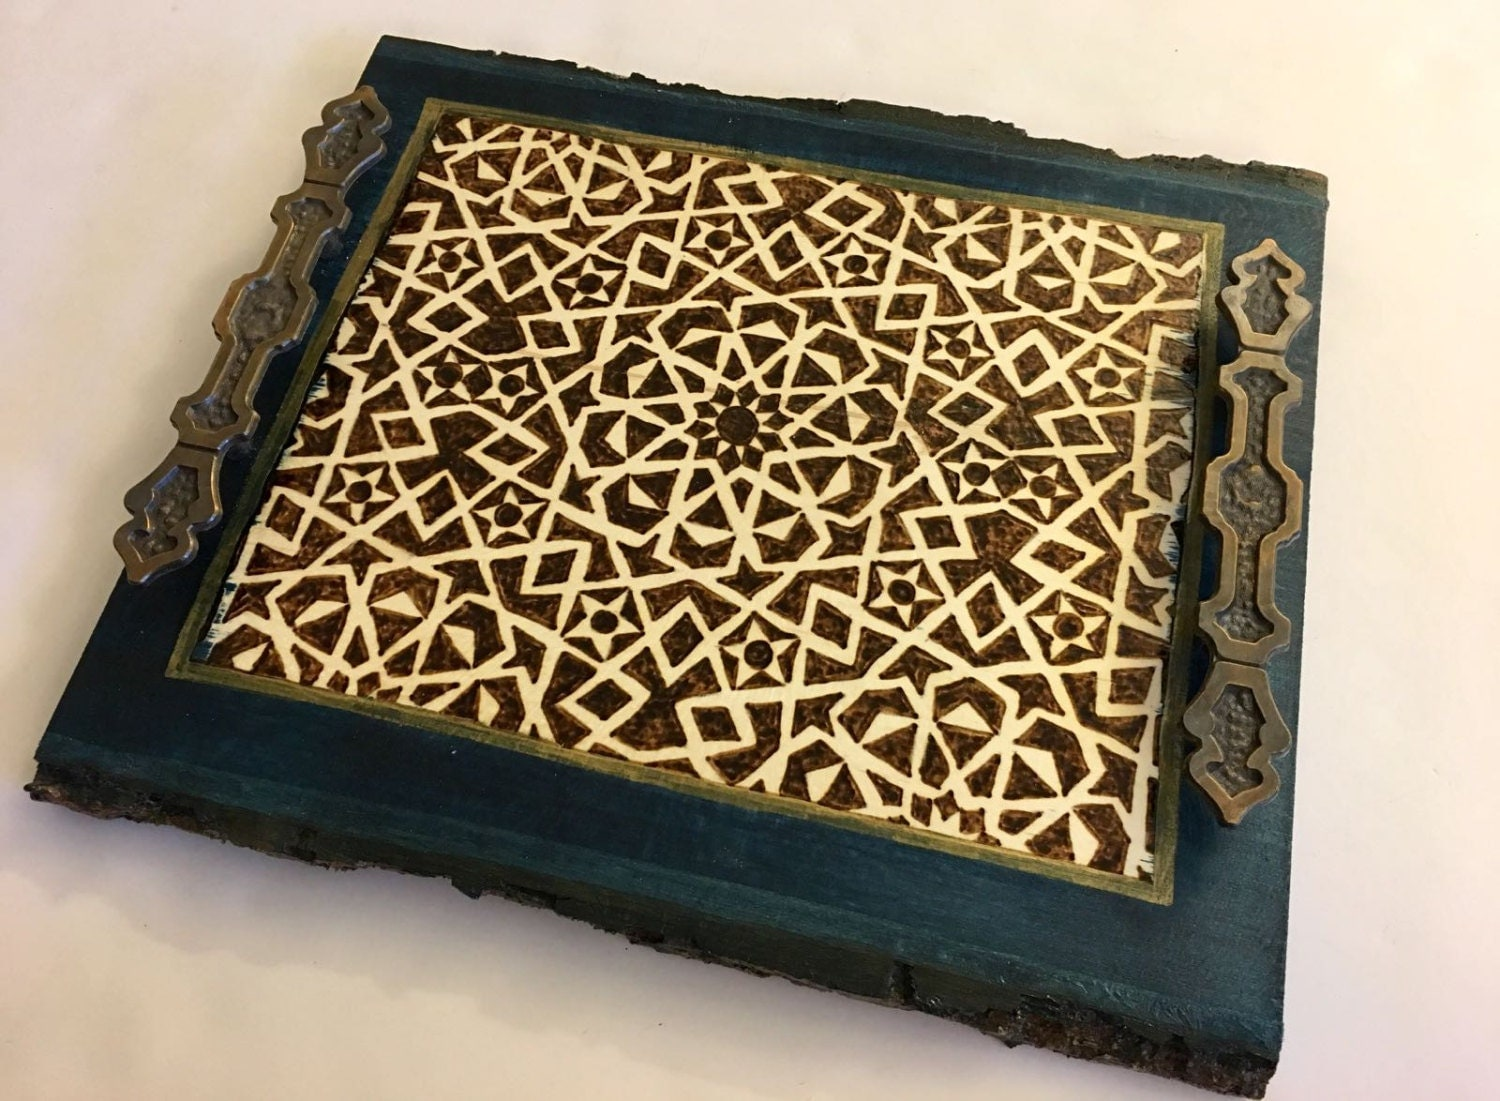 Decorative Tray Coaster Tray Coffee Table Tray Wooden Serving Platter Geometric Arabesque